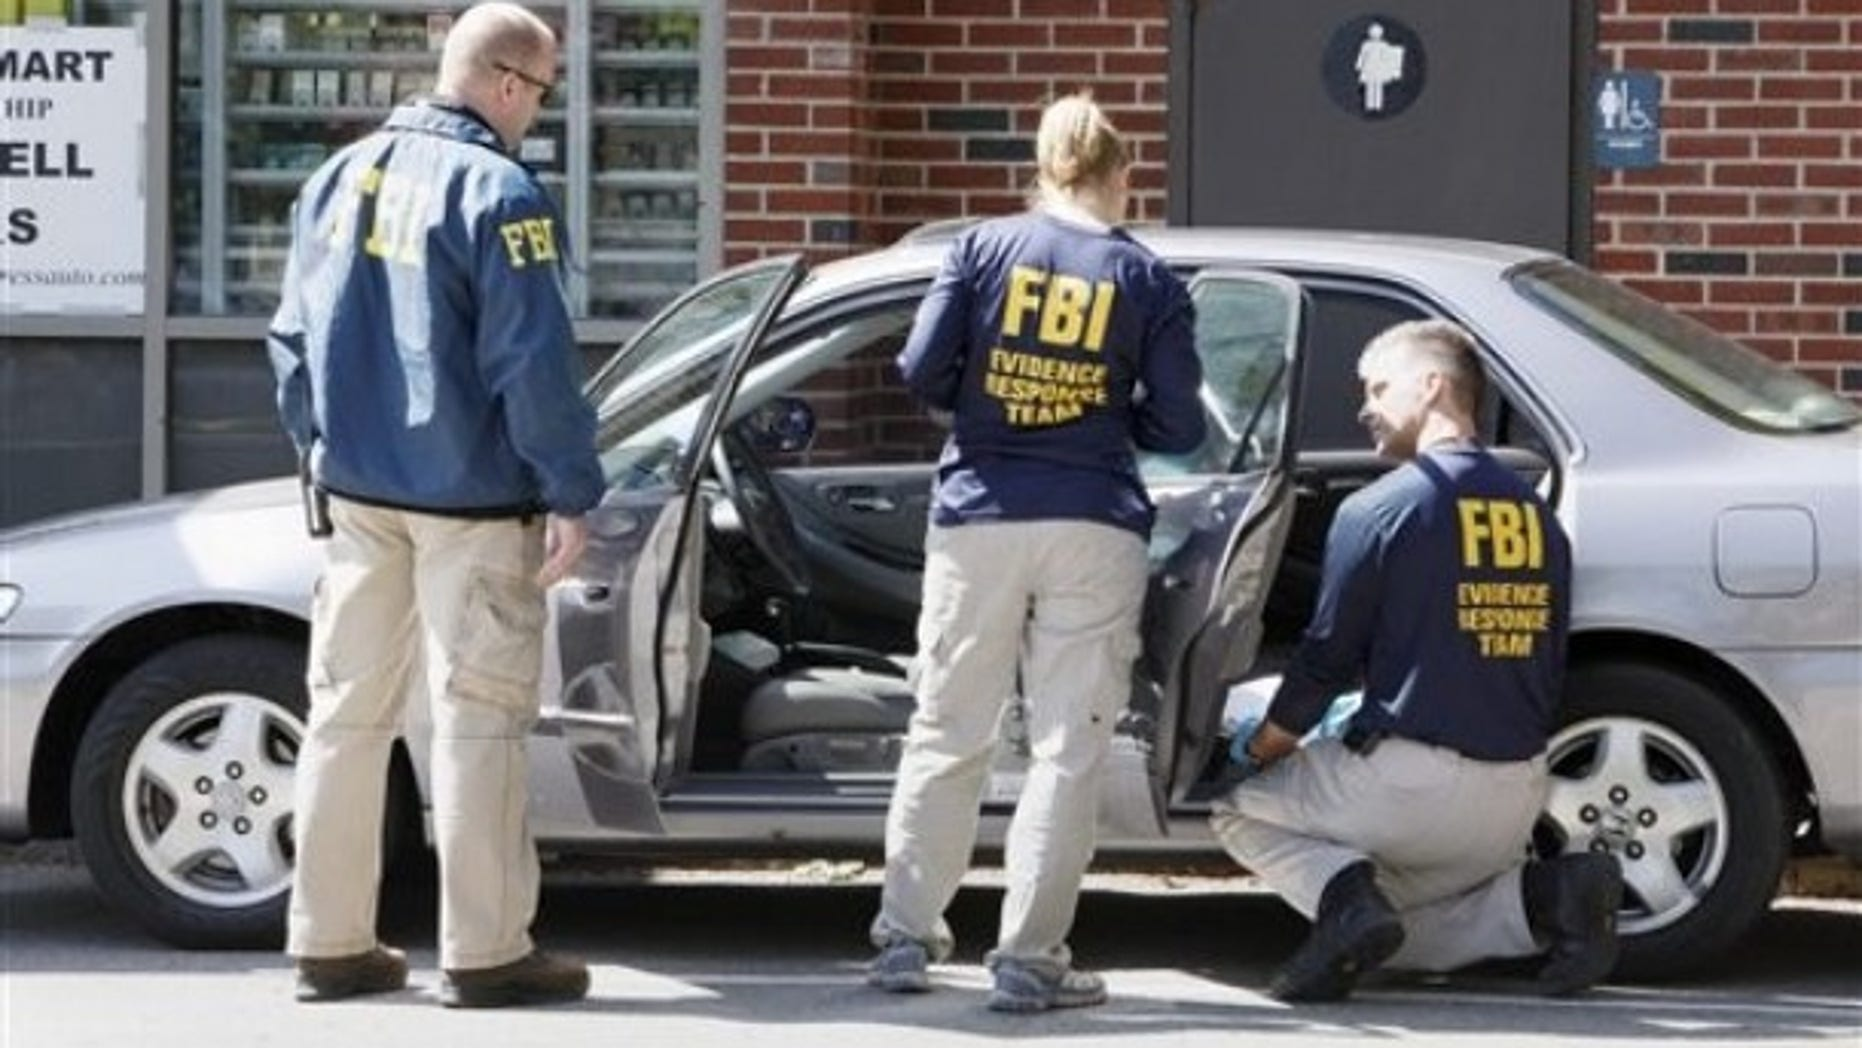 May 13: FBI investigators search a car at a service station in Brookline, Mass., in connection with the failed New York Times Square car bomb (AP).